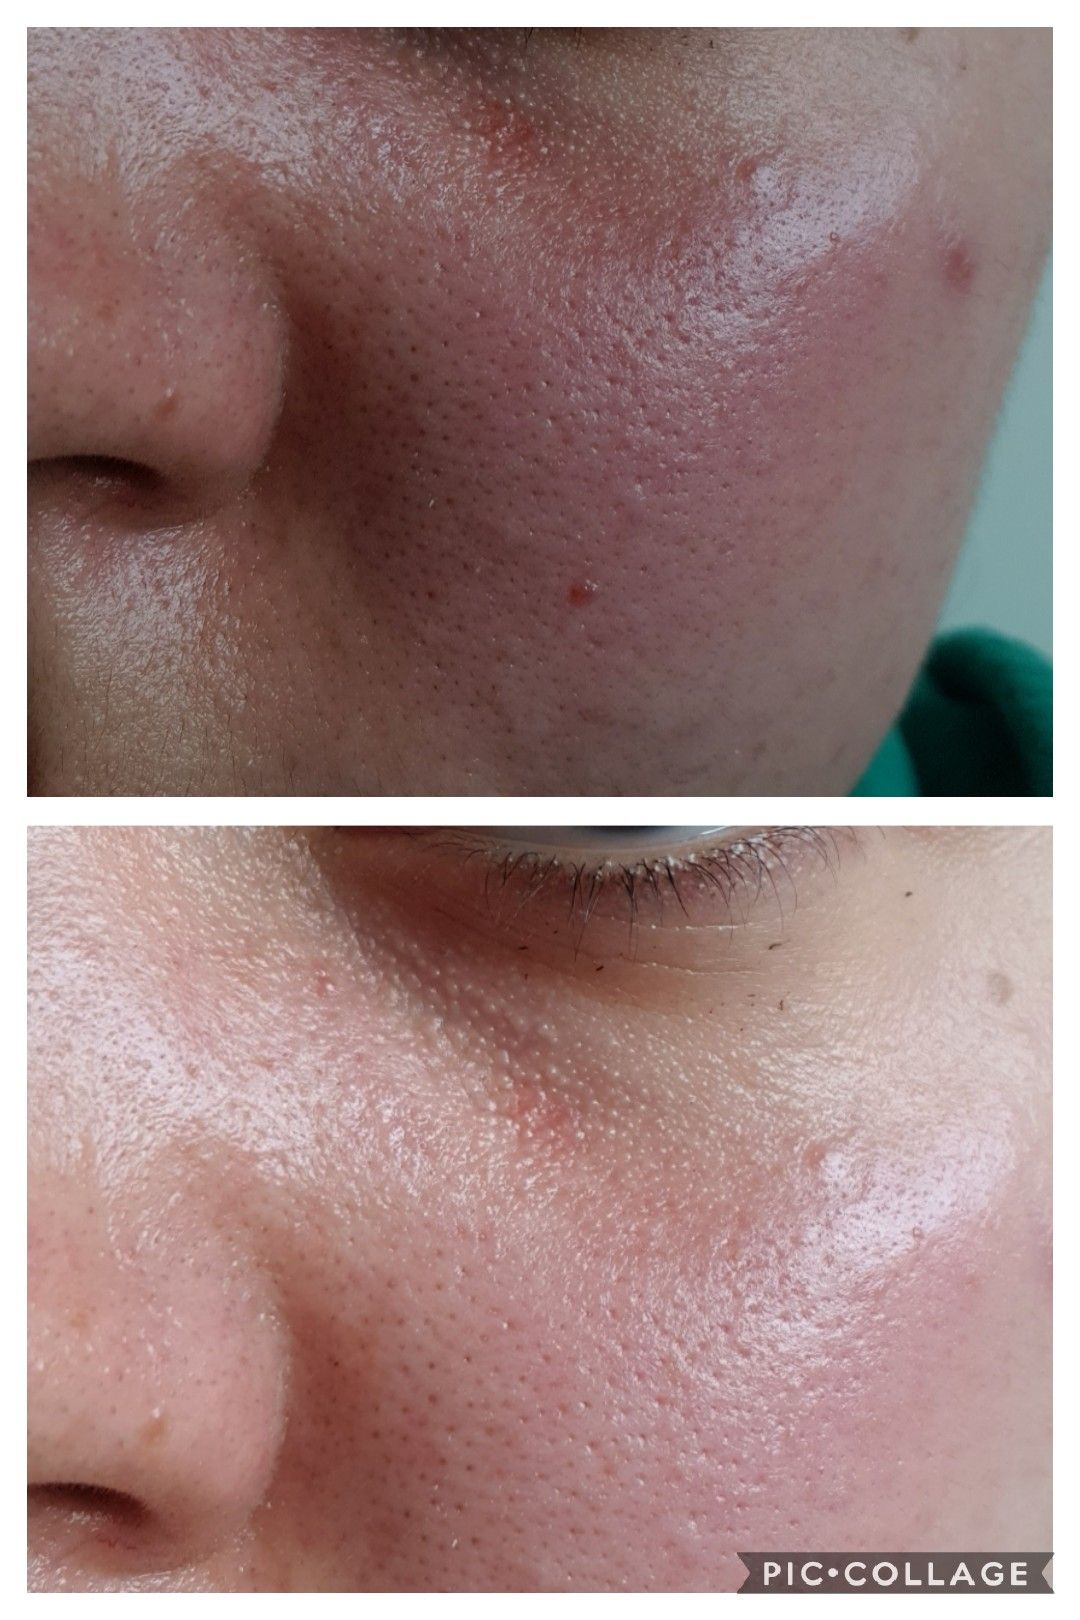 How To Get Rid Of Small Dry Bumps On Face